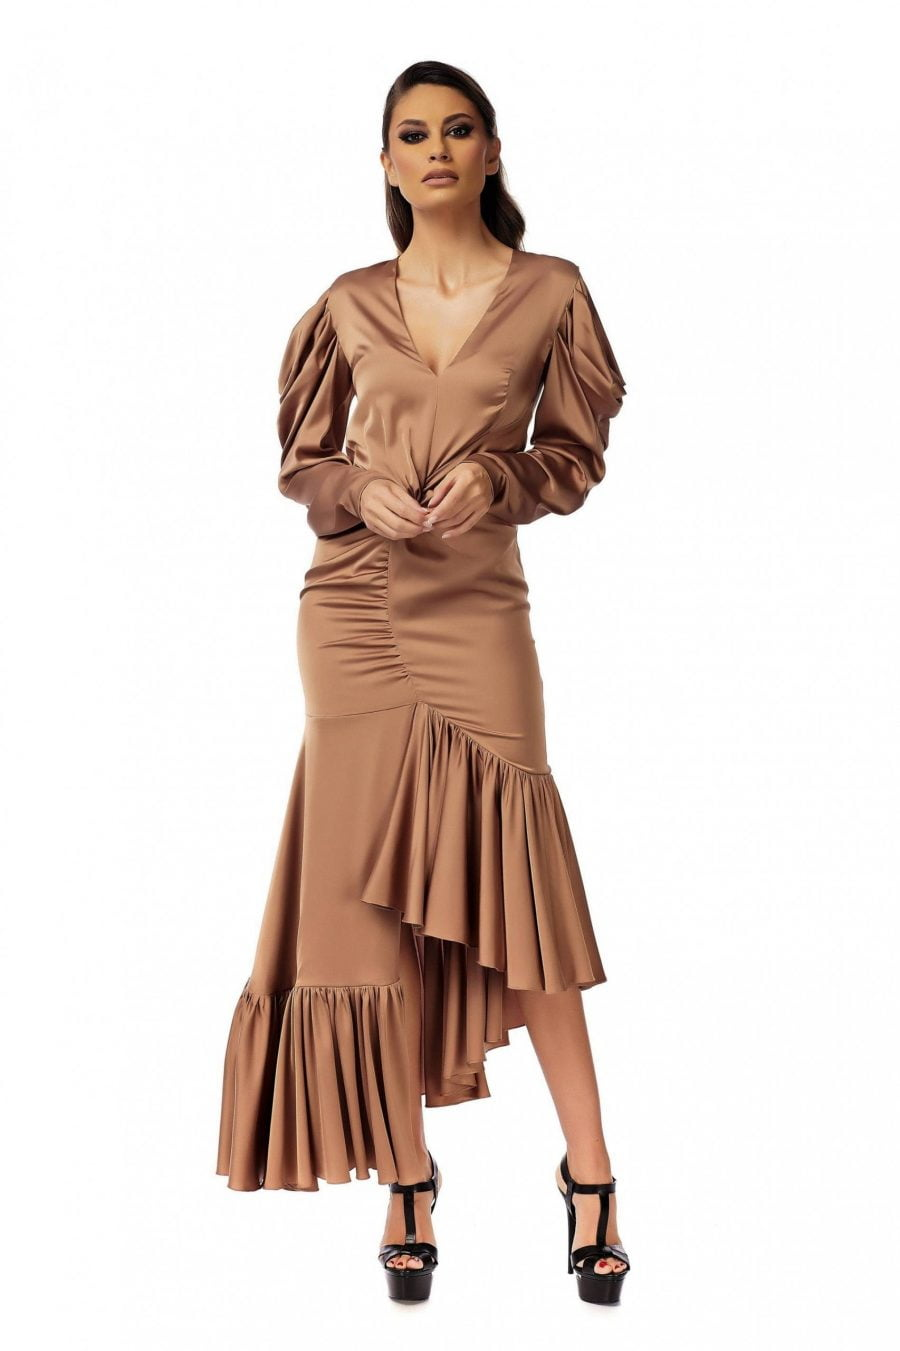 Evening Bronze Dress with Long Sleeves